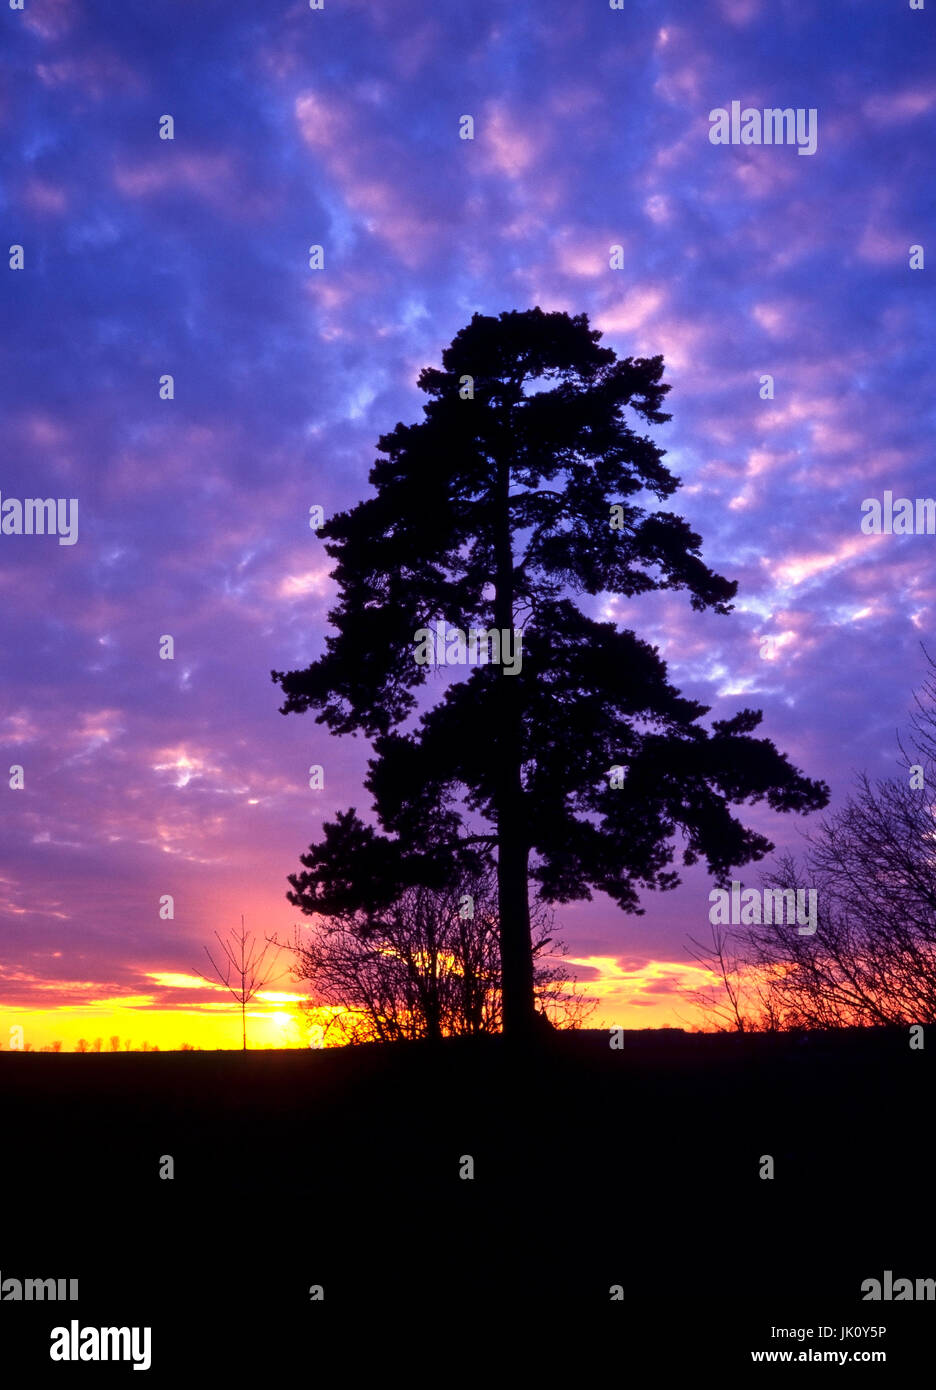 silhouette of a pine against the setting one suns itself. silhouette of a pine-tree against the setting sun., silhouette - Stock Image